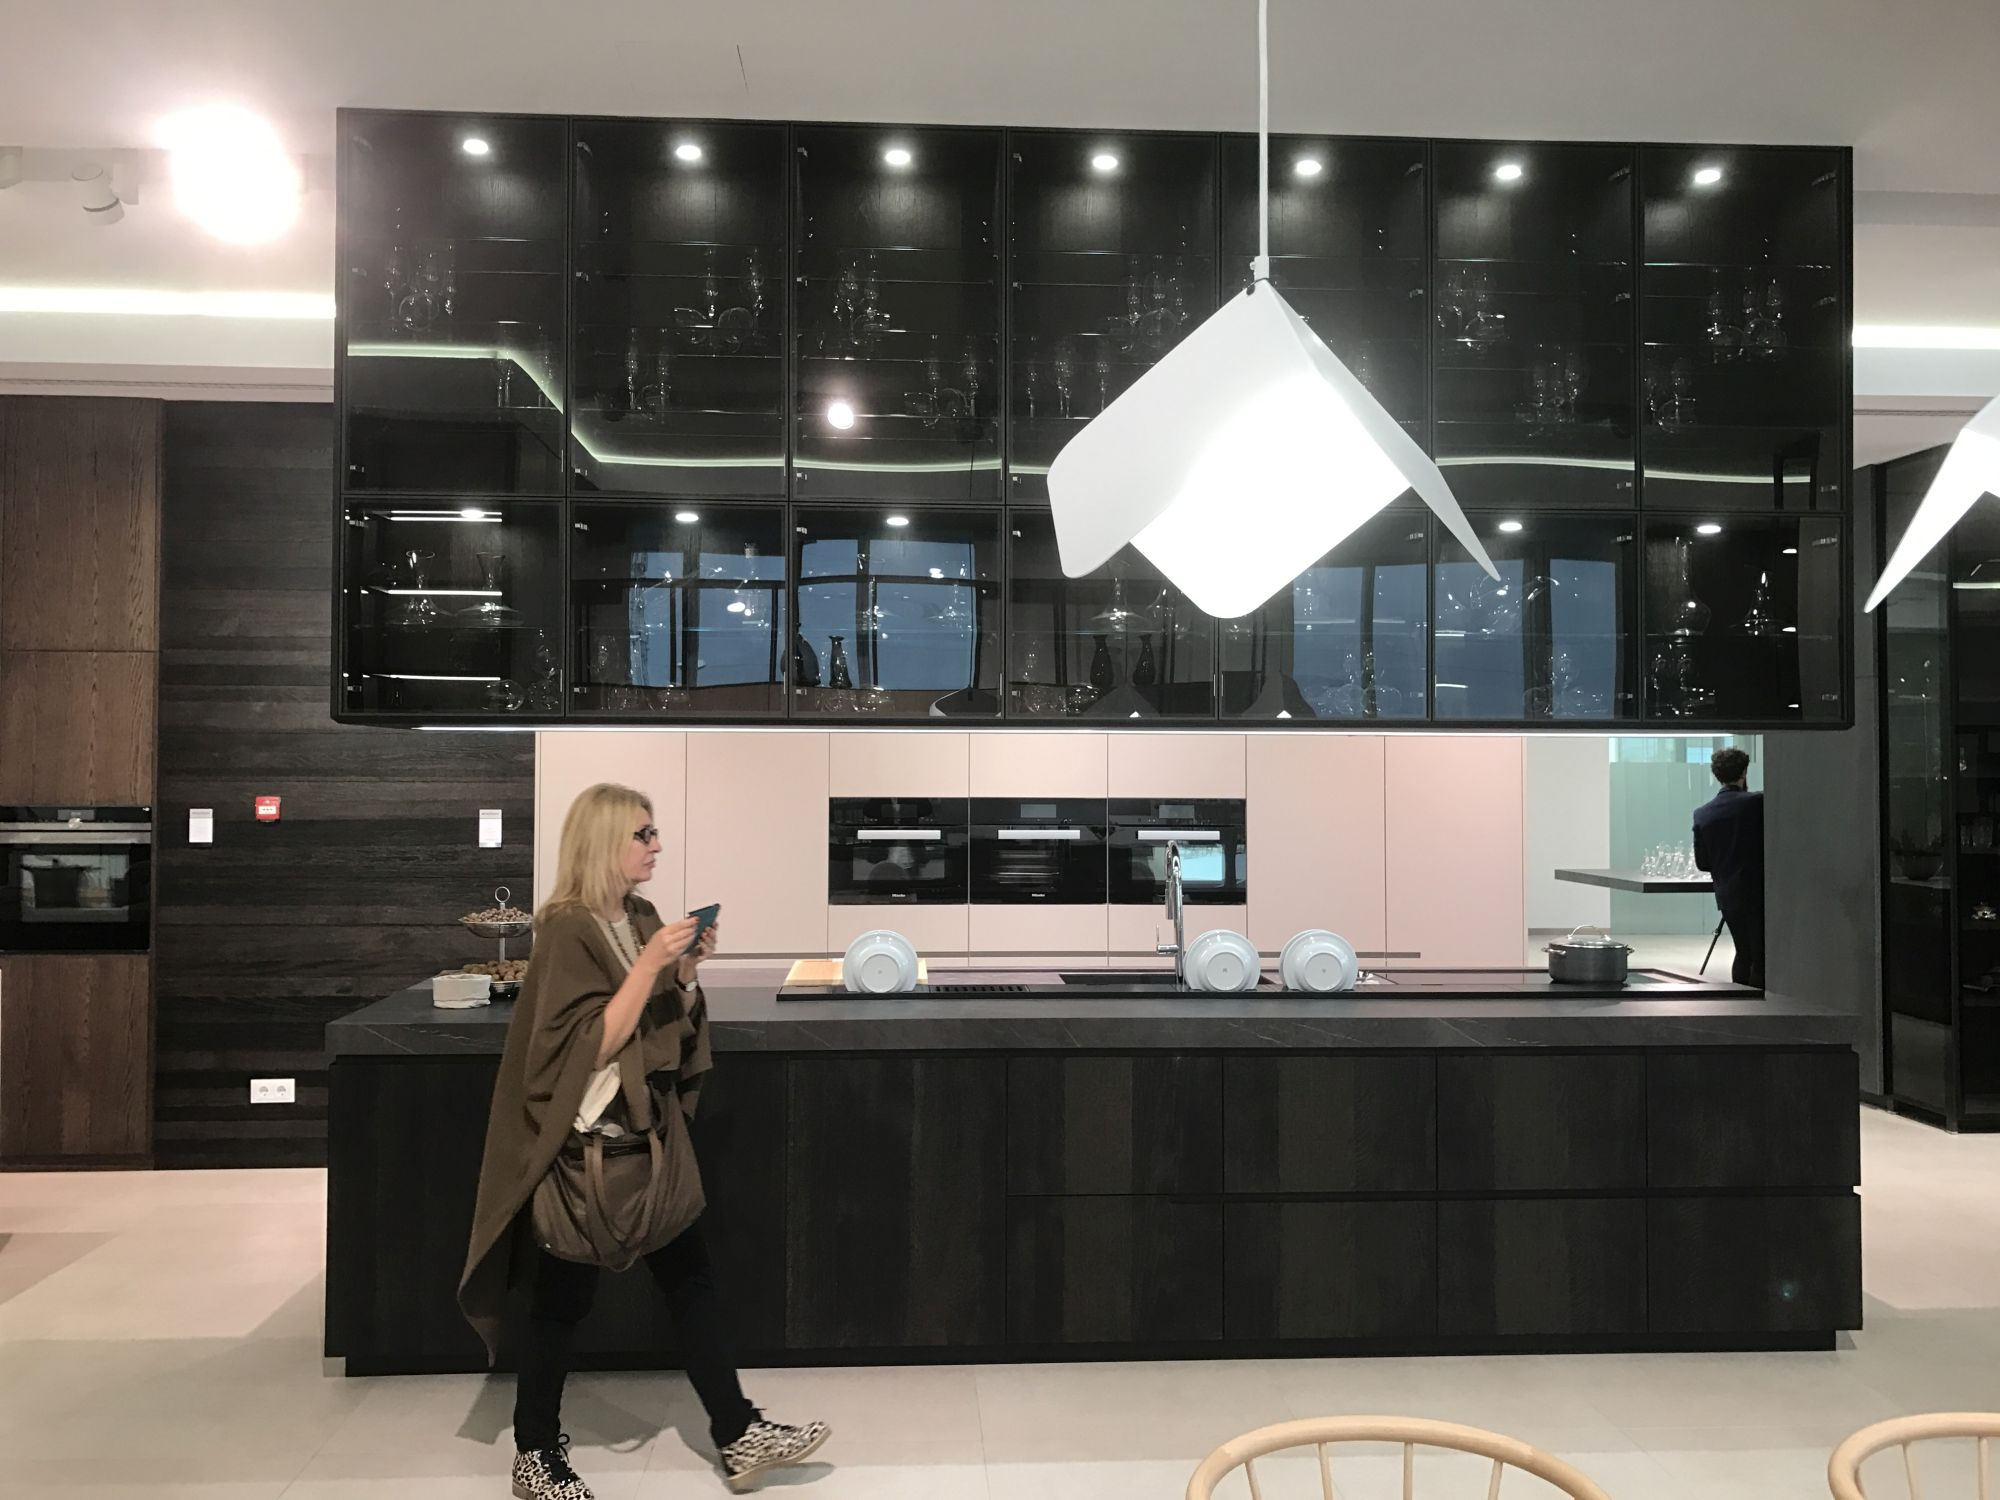 State-of-the-art-kitchen-design-GamaDecor